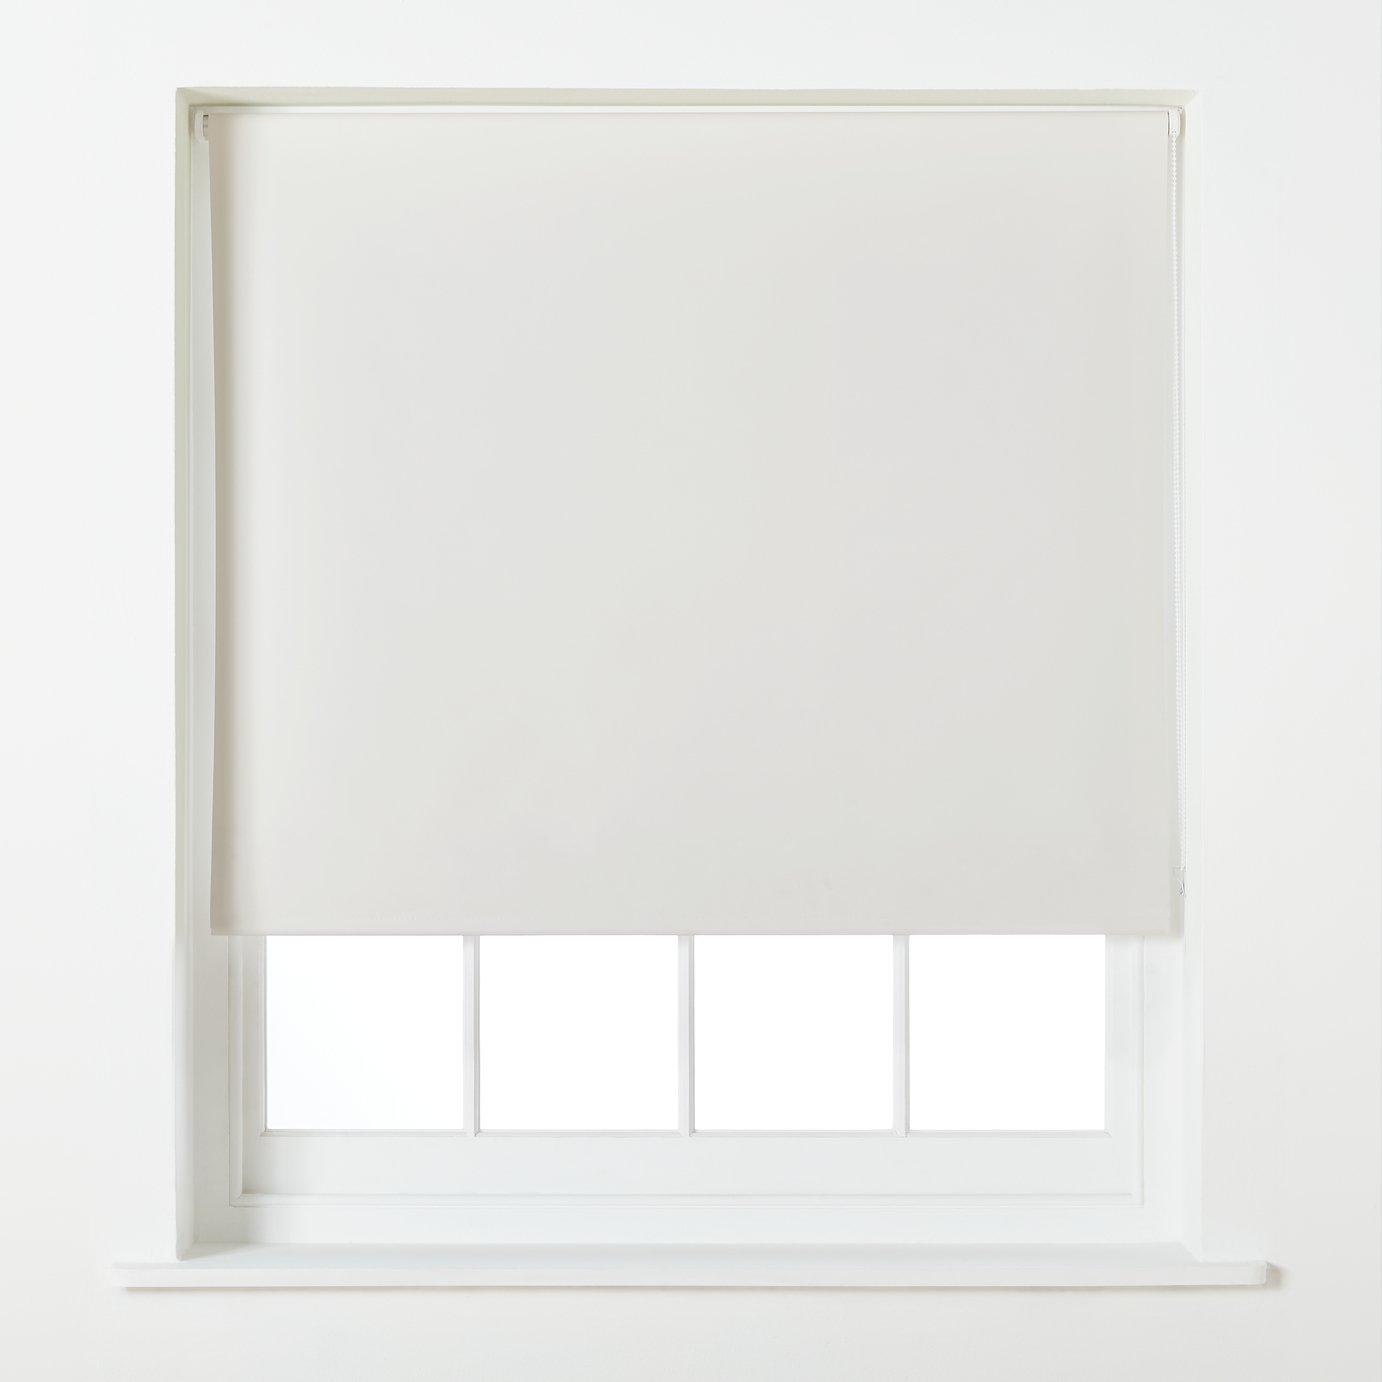 Argos Home Blackout Roller Blind - 3ft - Cream